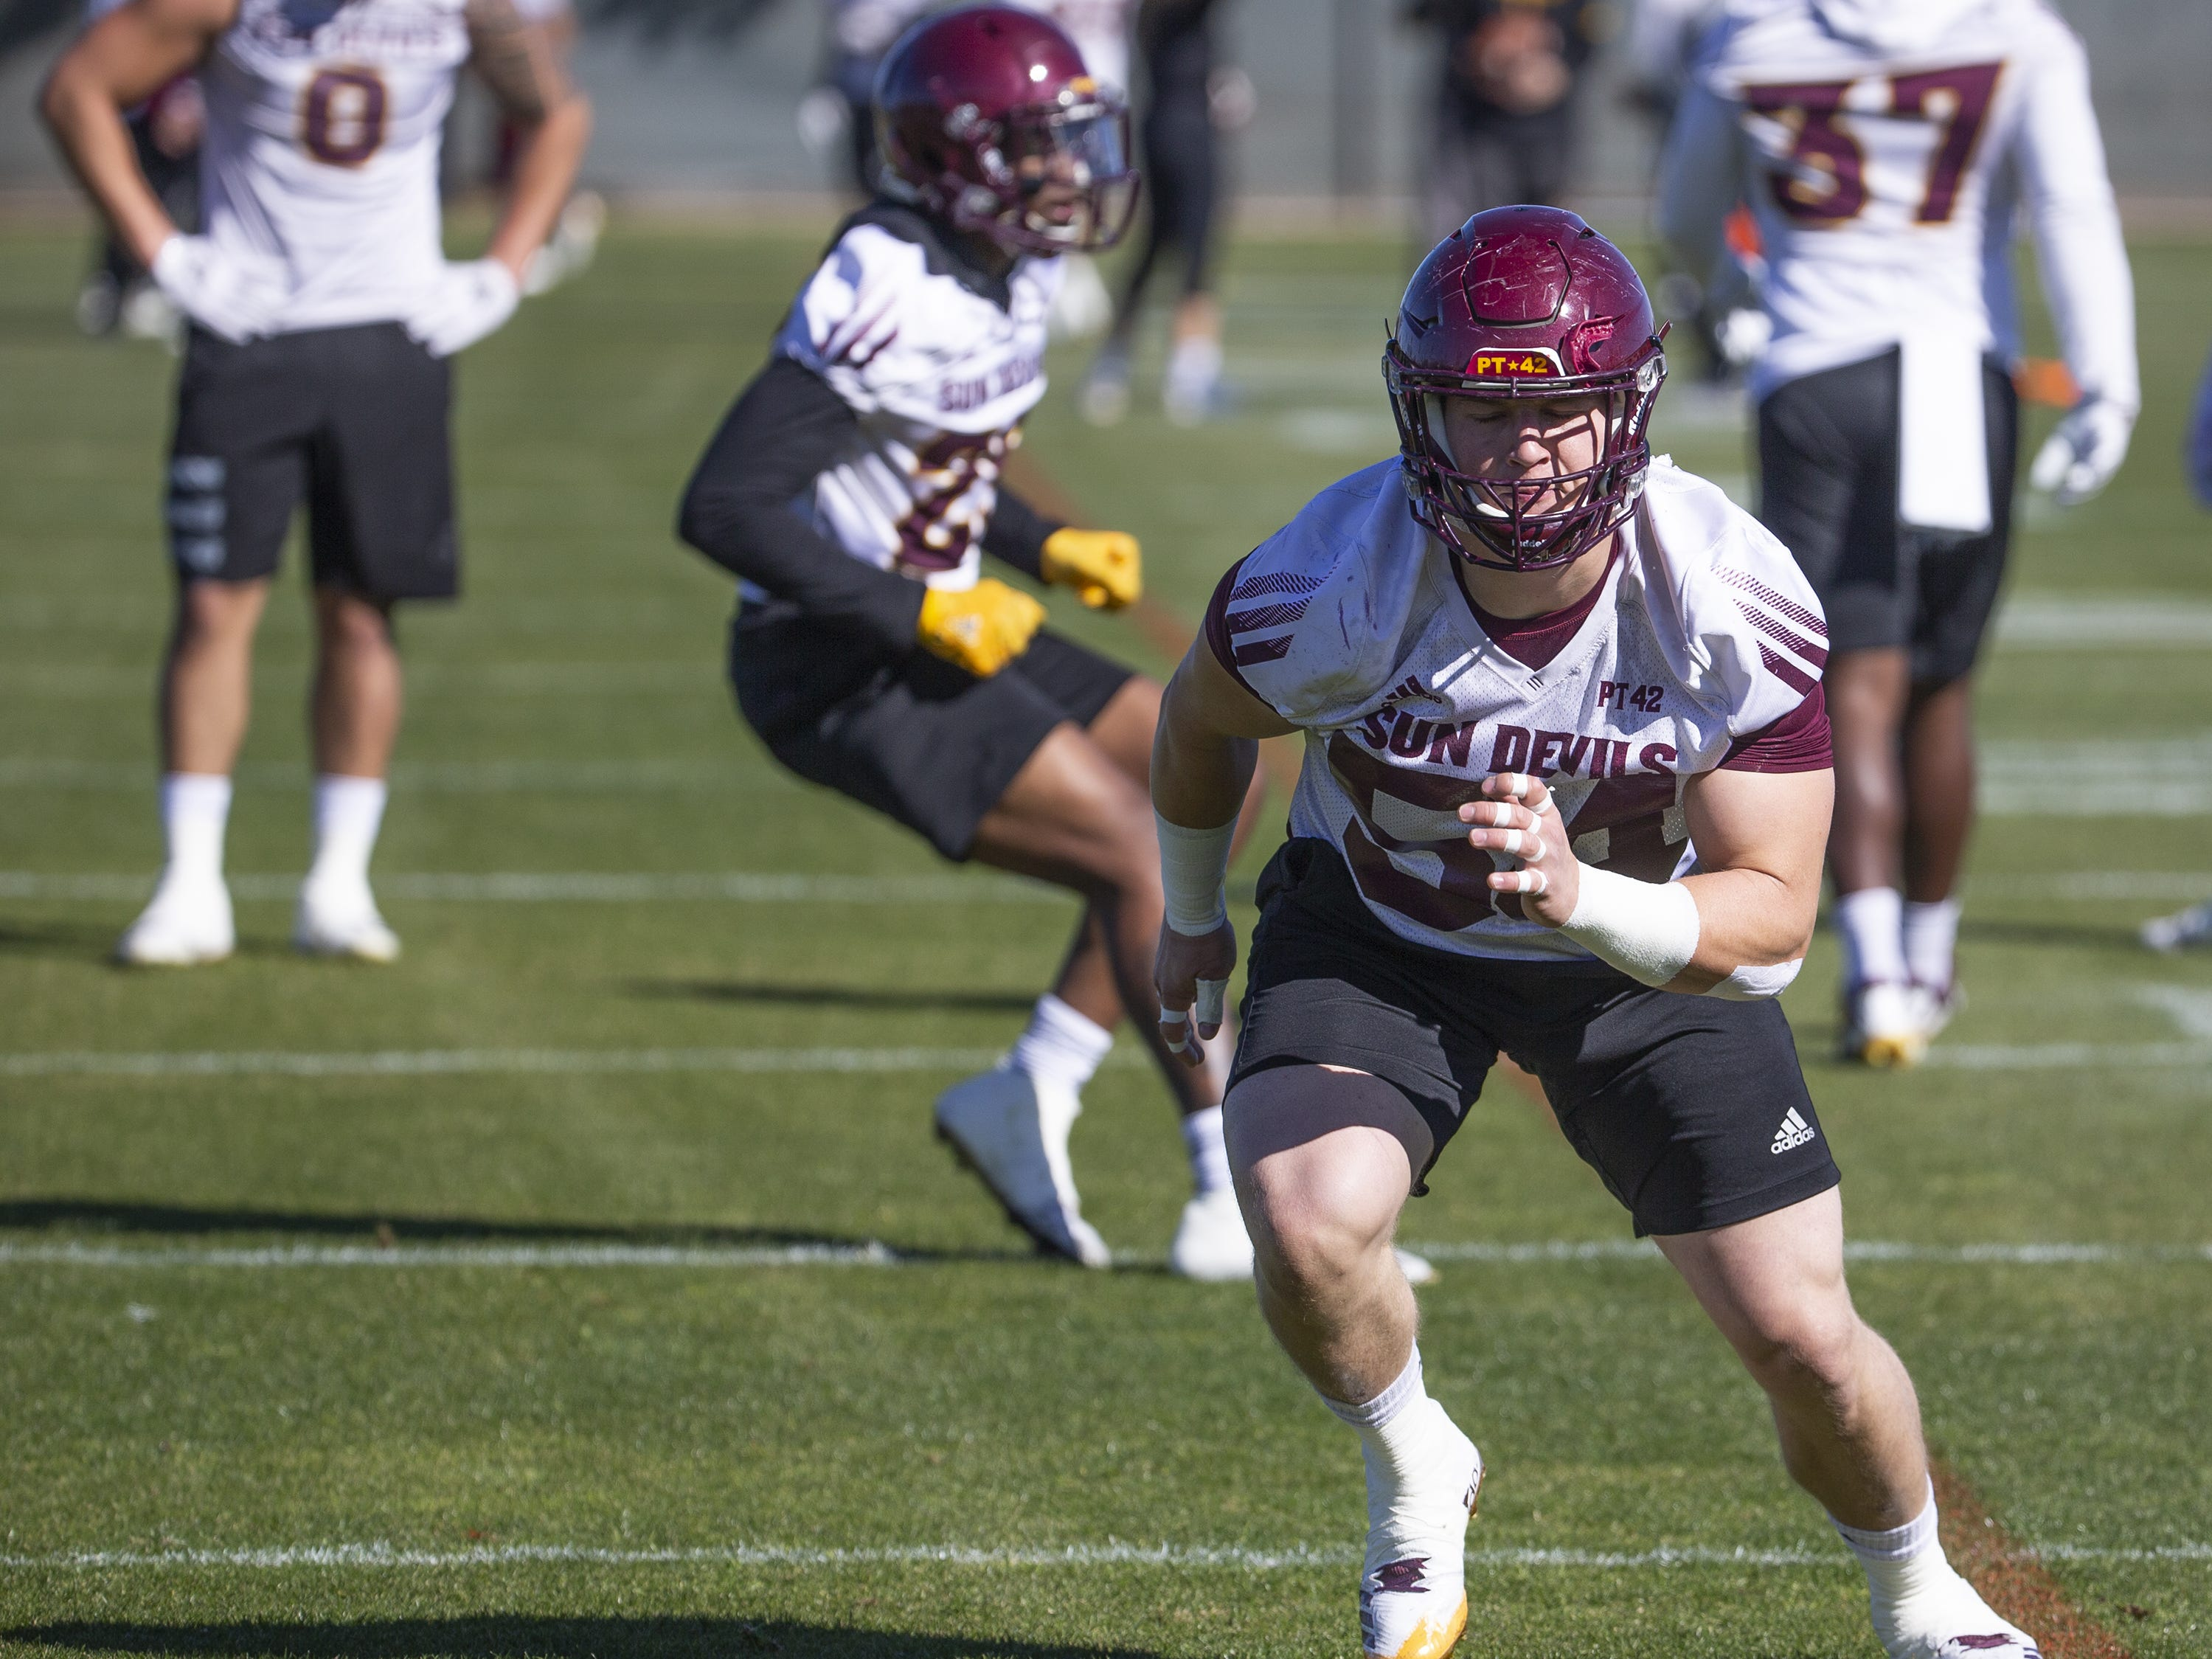 The Arizona State University football team practiced in Tempe, Tuesday, February 26, 2019.   Linebacker Case Hatch runs drills during practice.